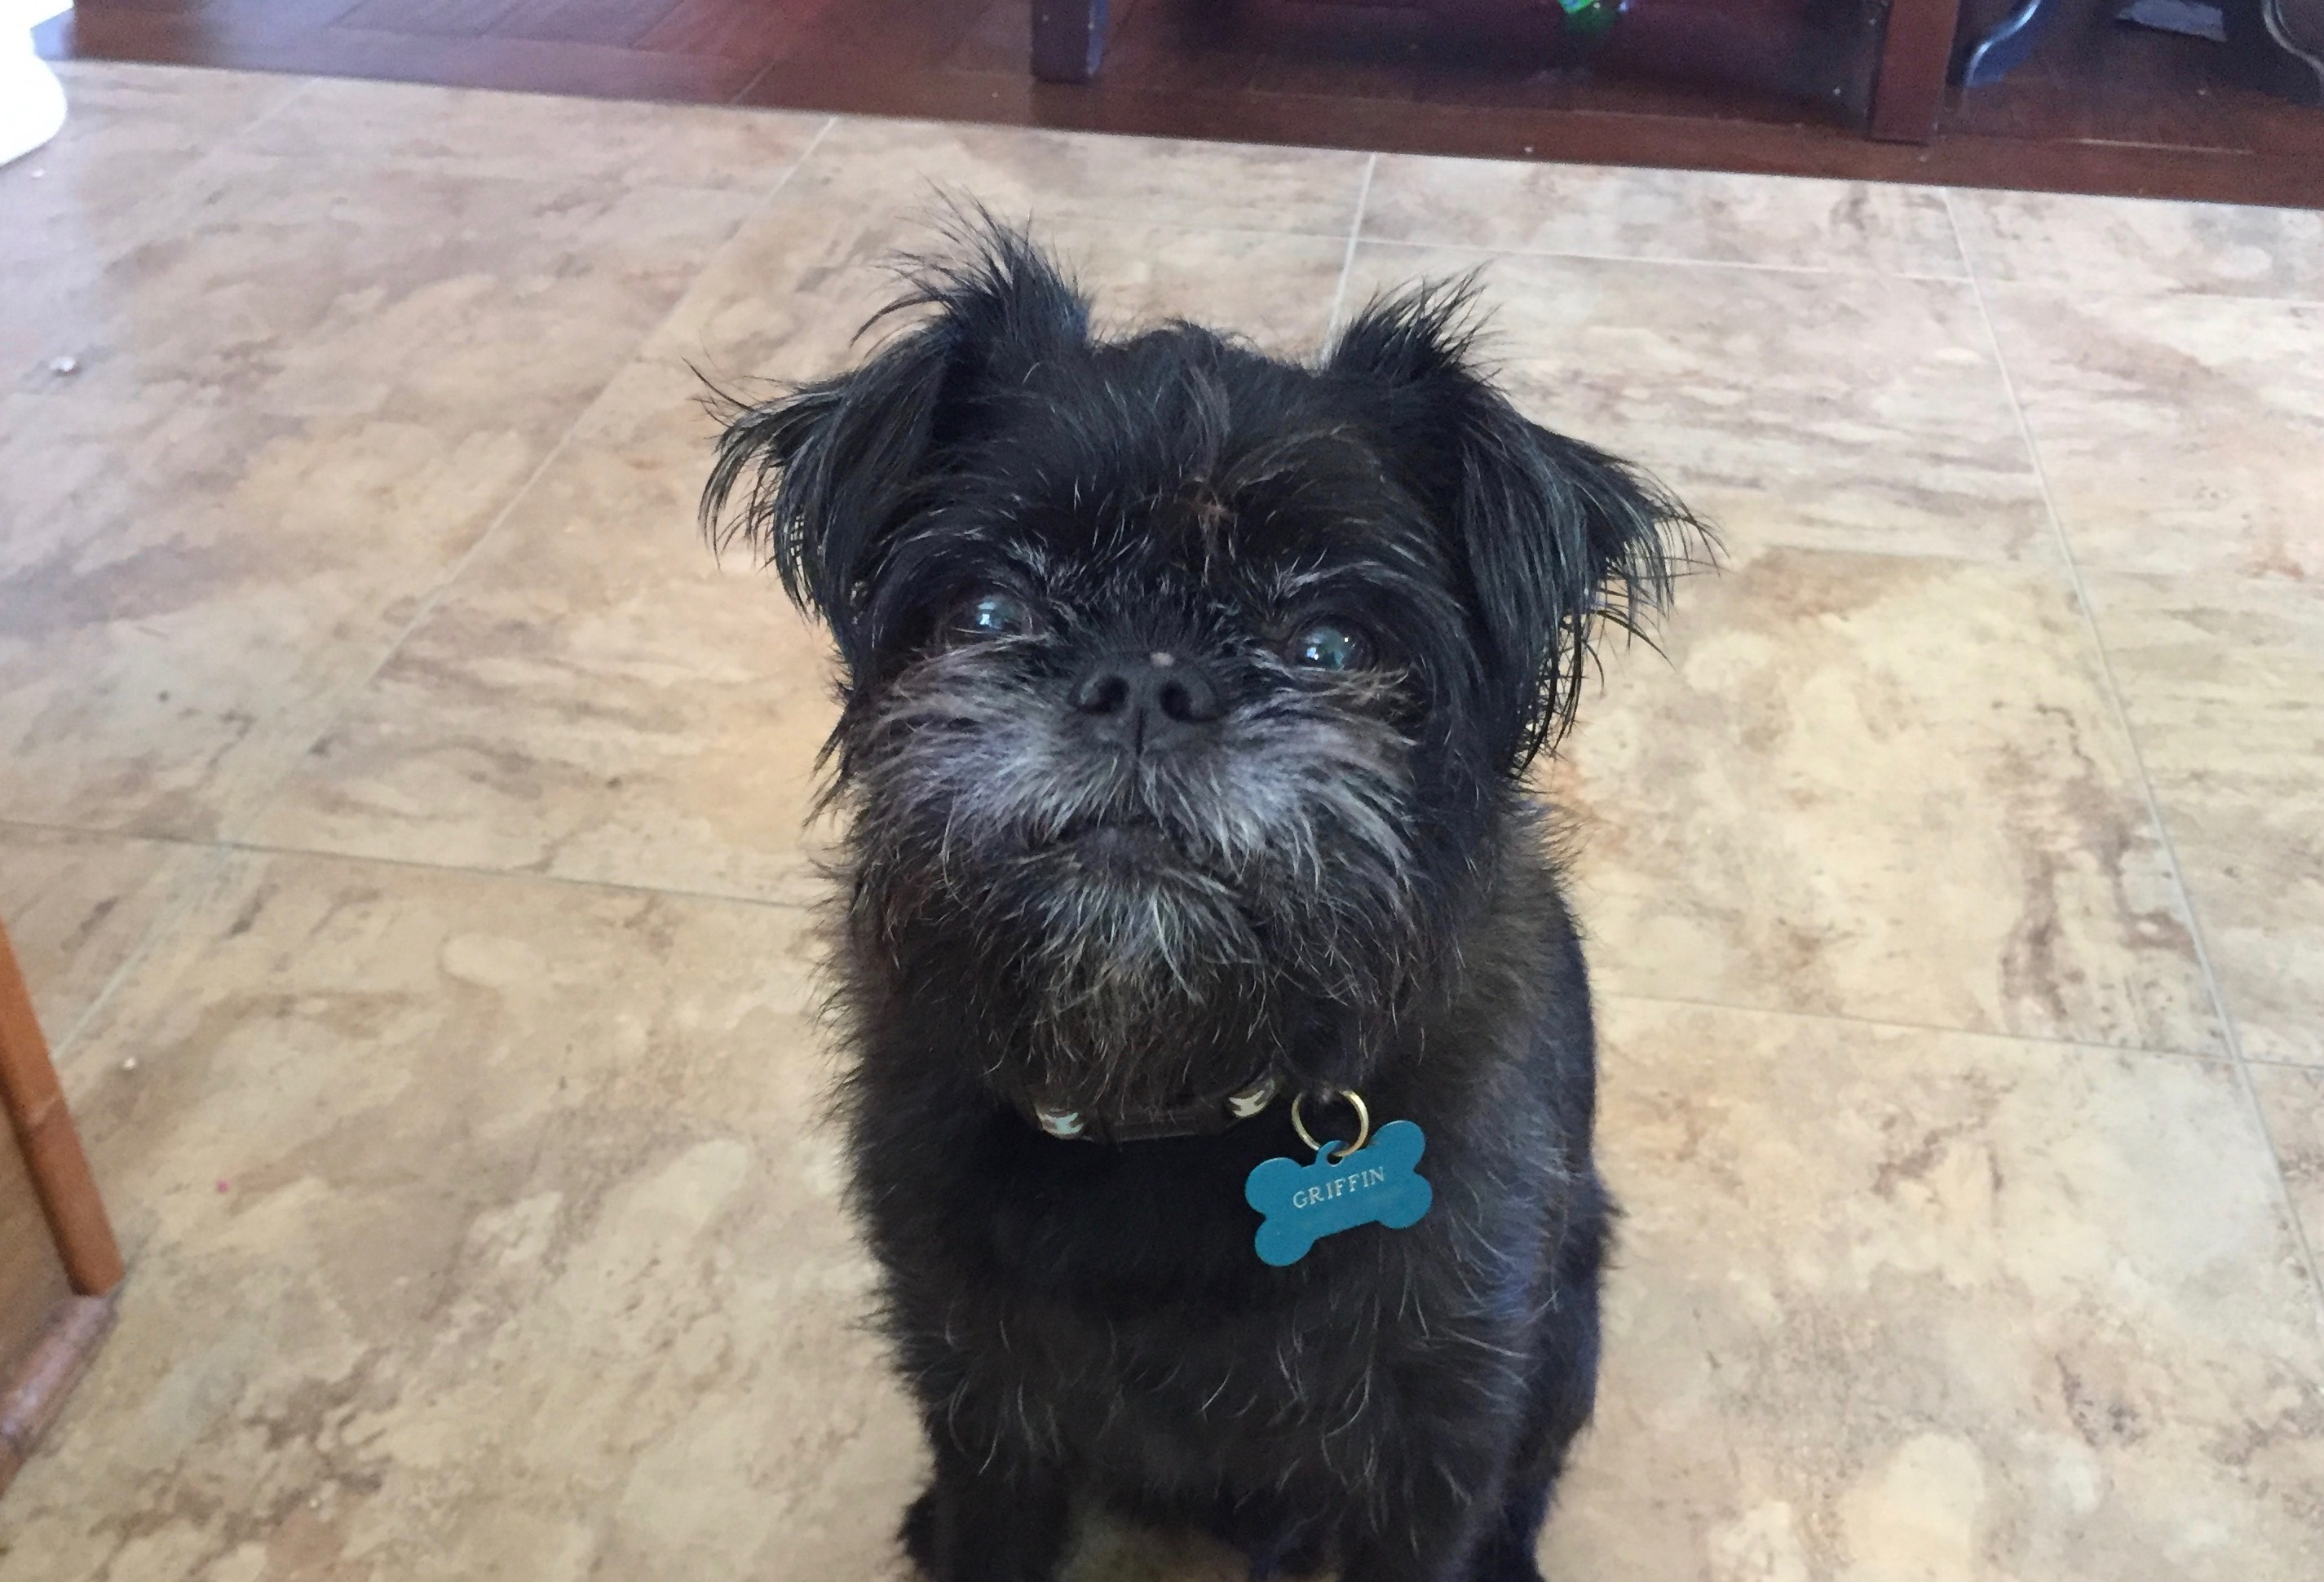 Griffin is a nine-year-old Brussels Griffon who lives in Omaha. His guardian set up this dog behavior training session to train him to stop guarding the ... & Dog Training Tips to Stop a Brussels Griffon From Guarding the Door ...